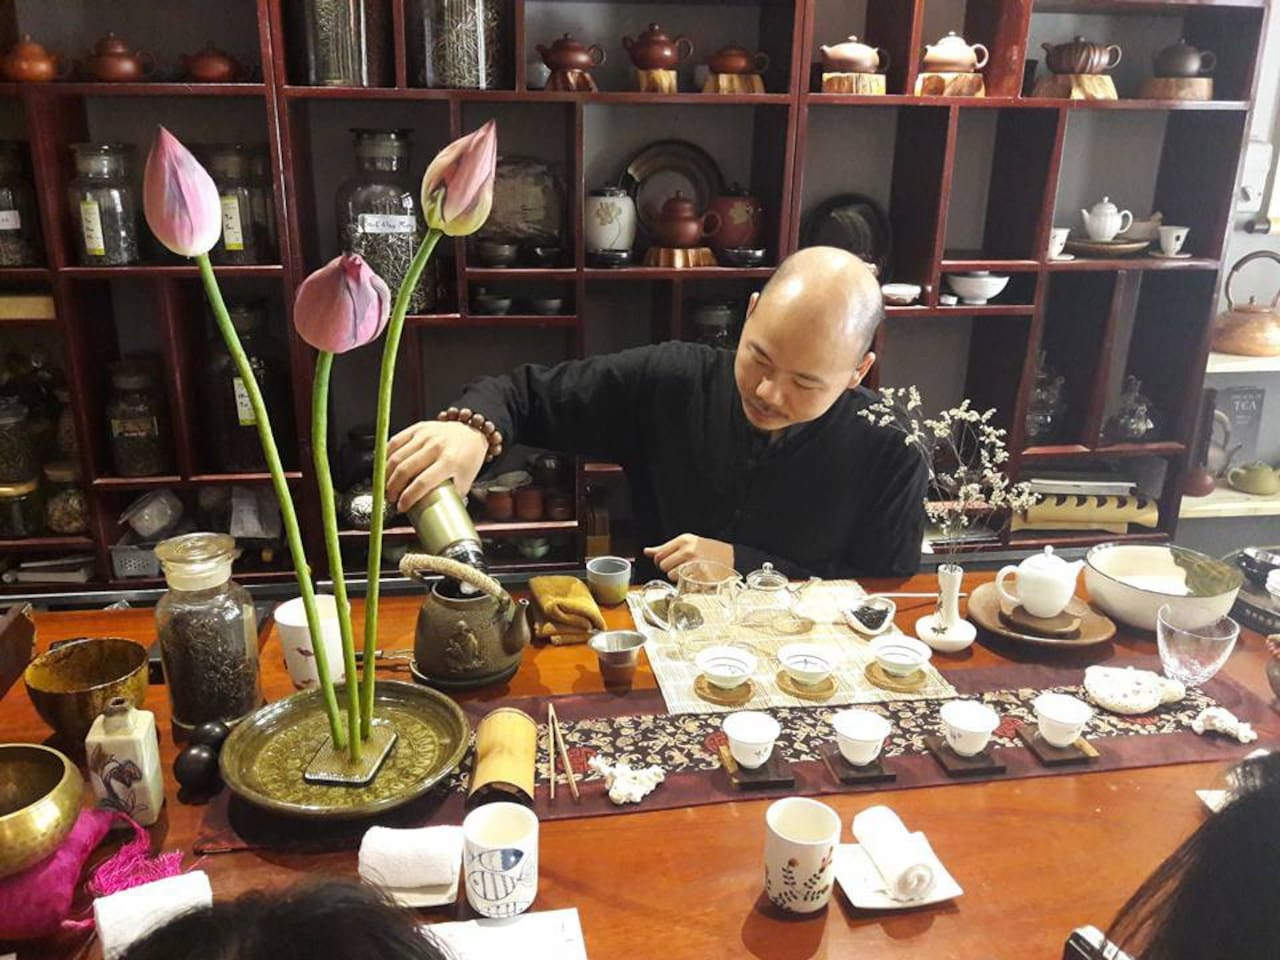 Mr. Nguyen Viet Hung - the Tea Master in Vietnam is brewing the special Lotus Tea made by us